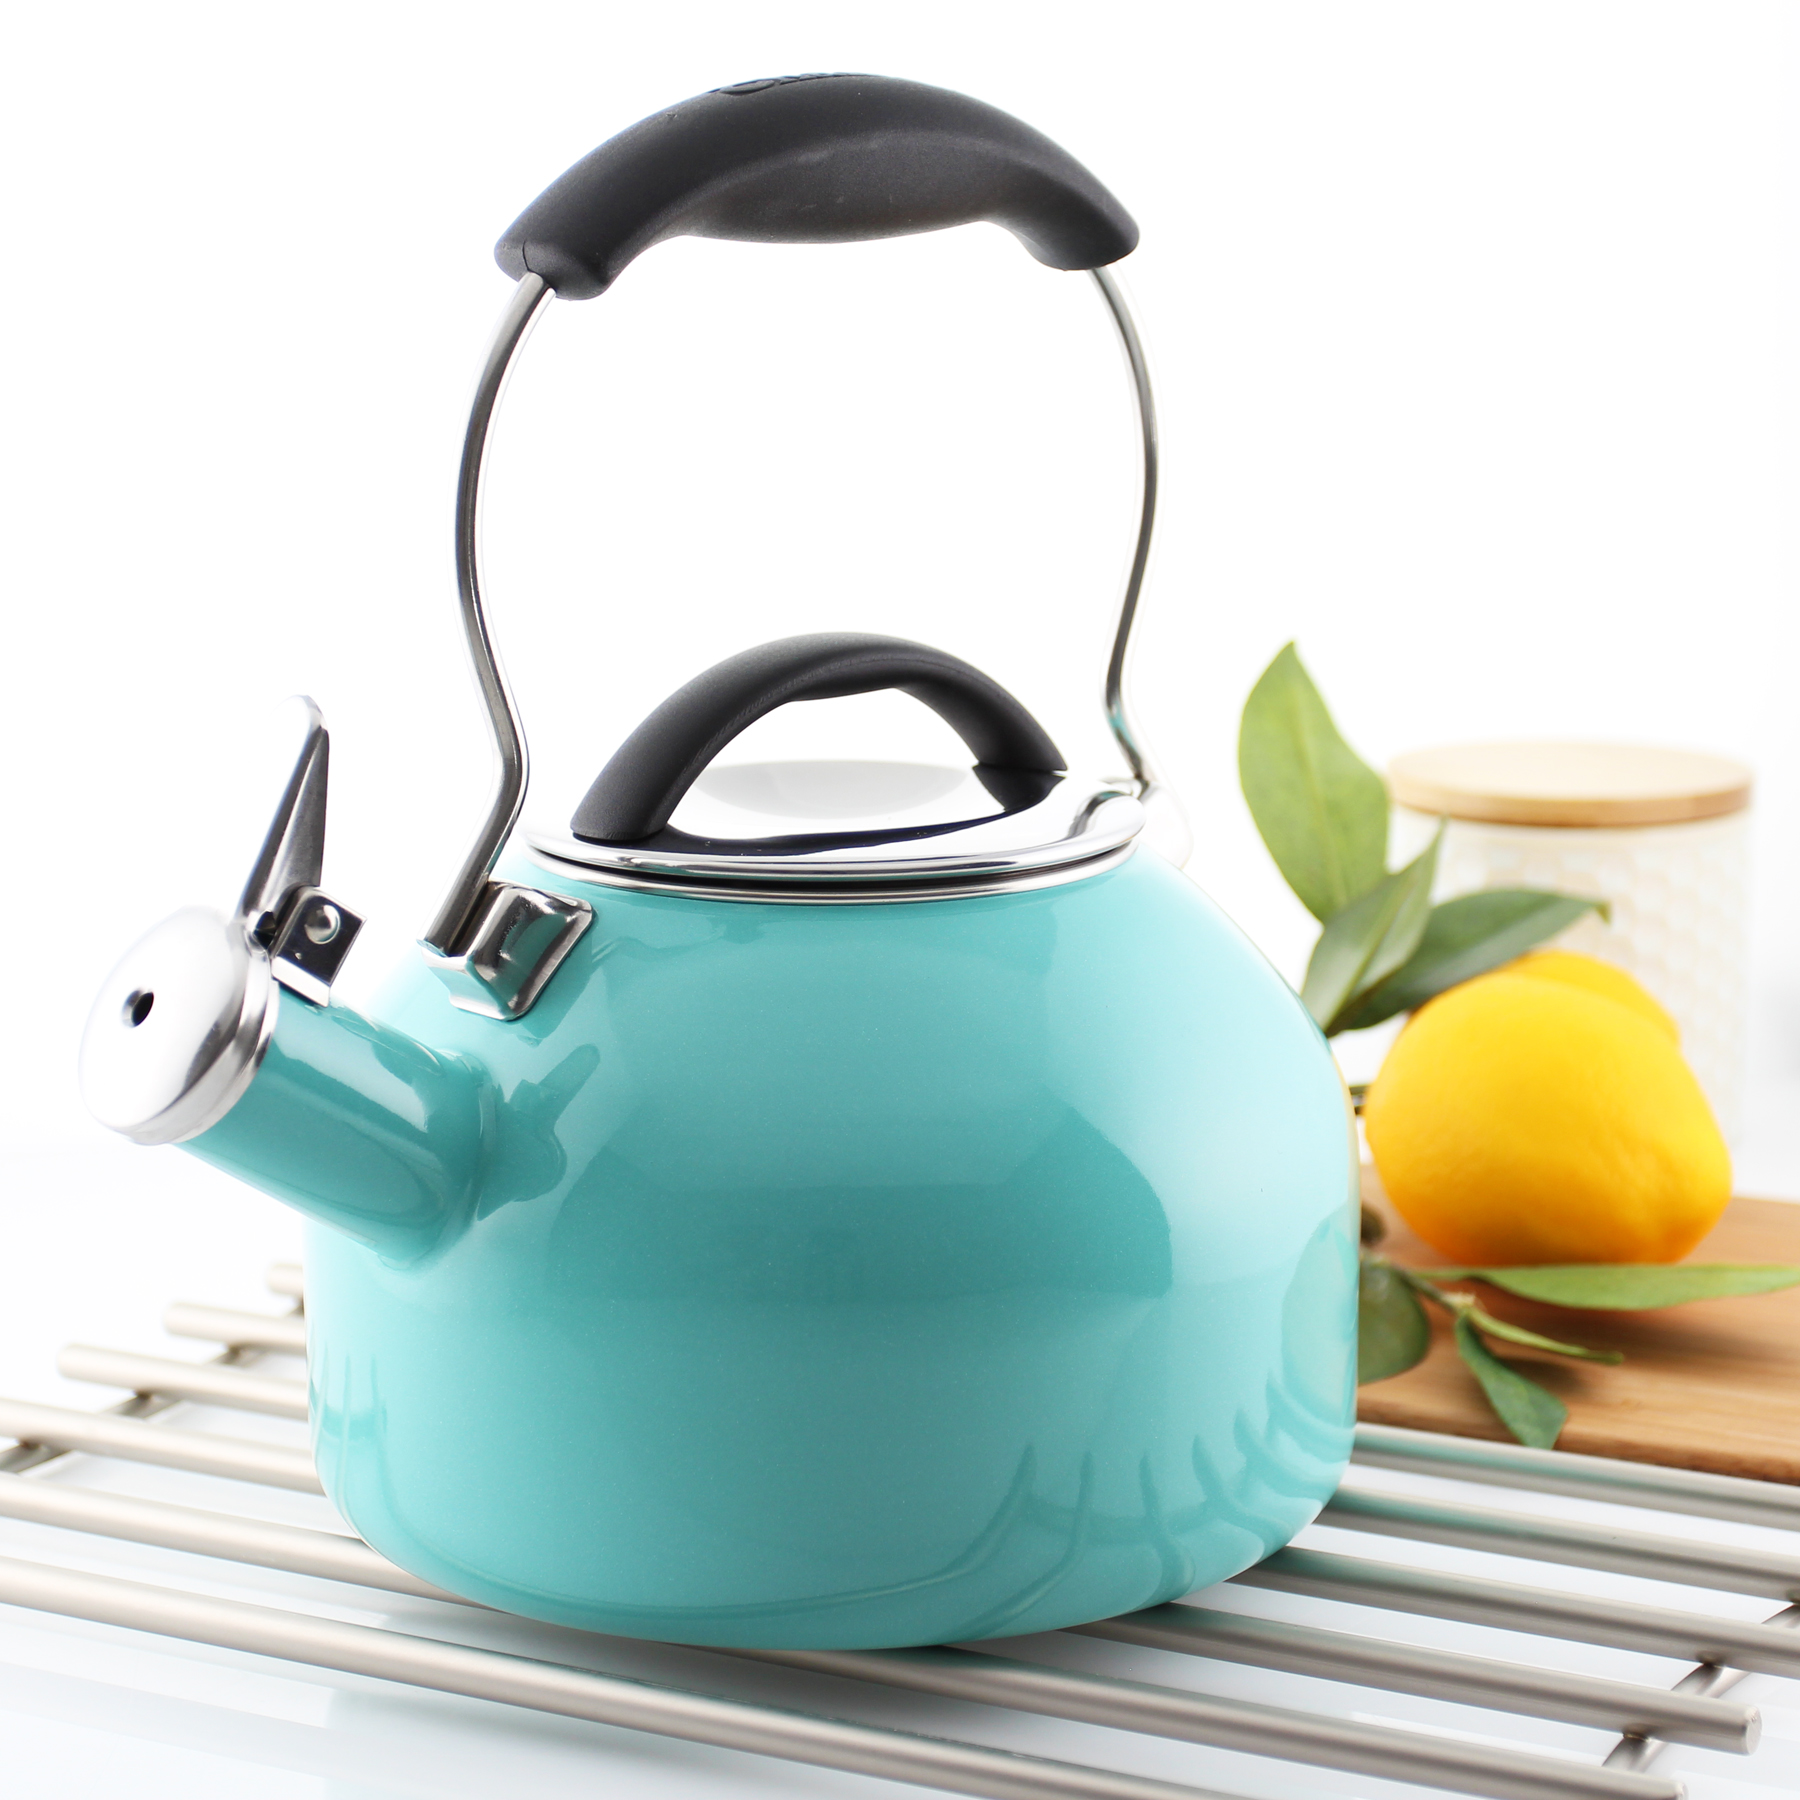 Oolong kettle from Chantal has an ergonomic stay-cool handle that fits comfortably in the hand for easy pouring